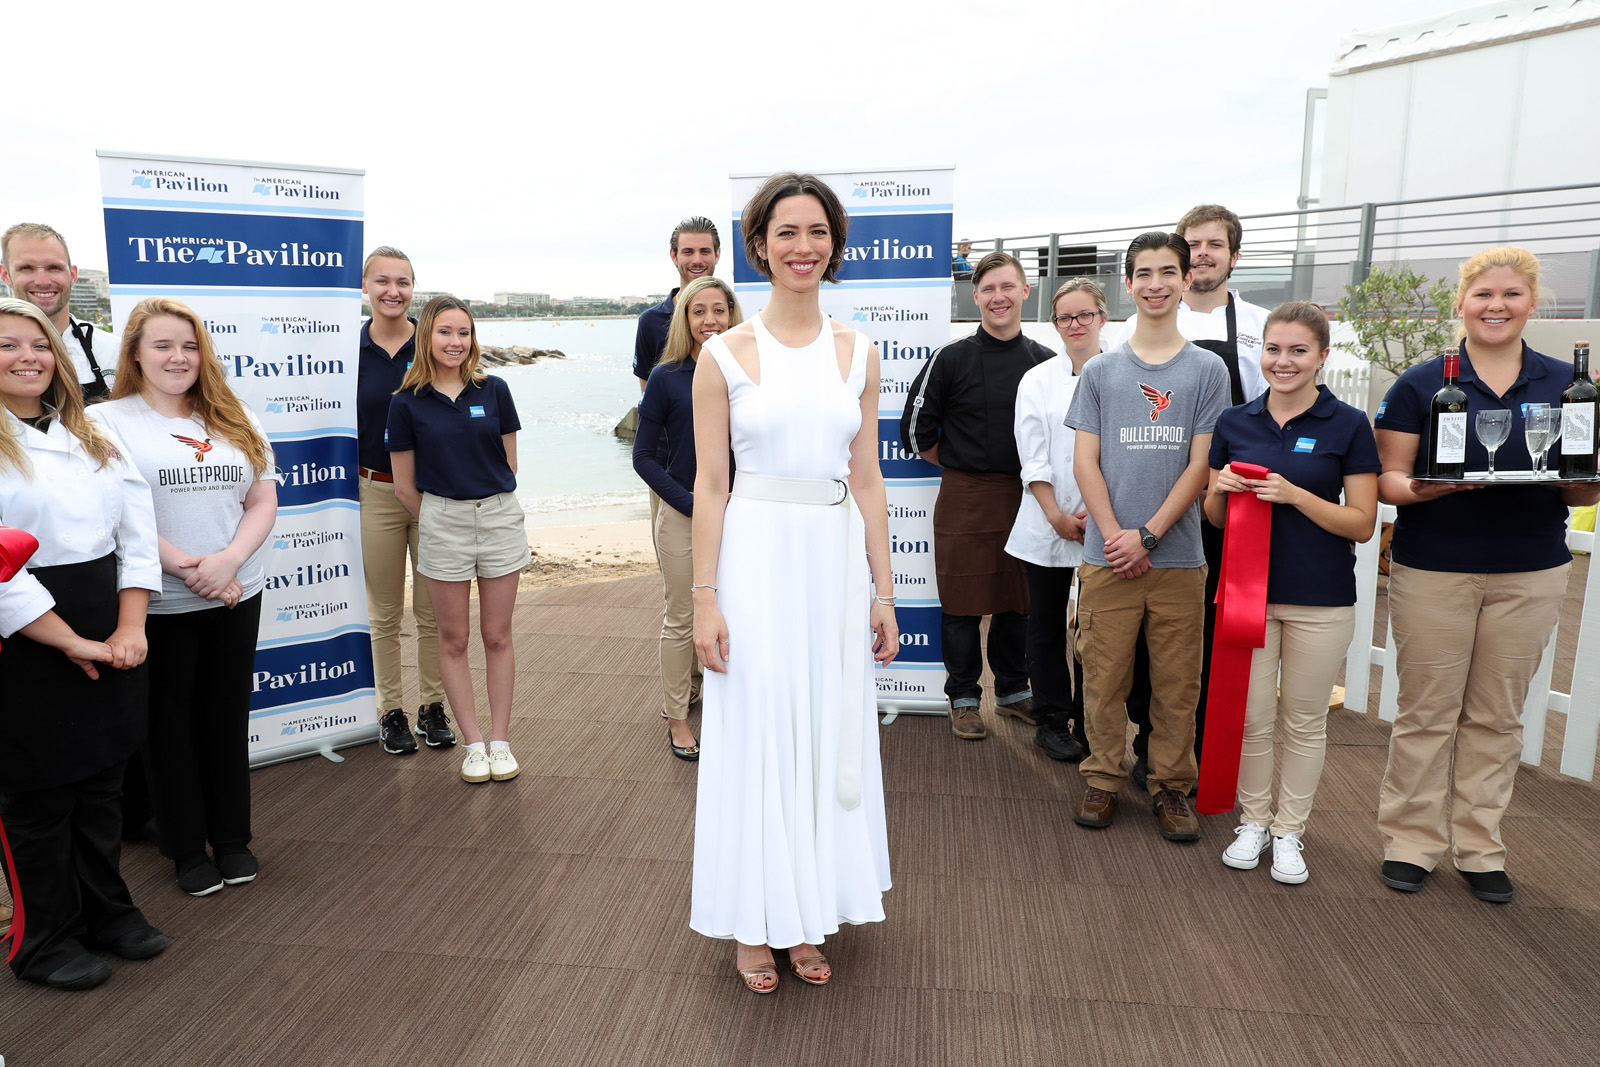 CANNES, FRANCE - MAY 13:  Rebecca Hall attends the ribbon cutting to open the American Pavilion during the 69th annual Cannes Film Festival on May 13, 2016 in Cannes, France.  (Photo by Neilson Barnard/Getty Images)